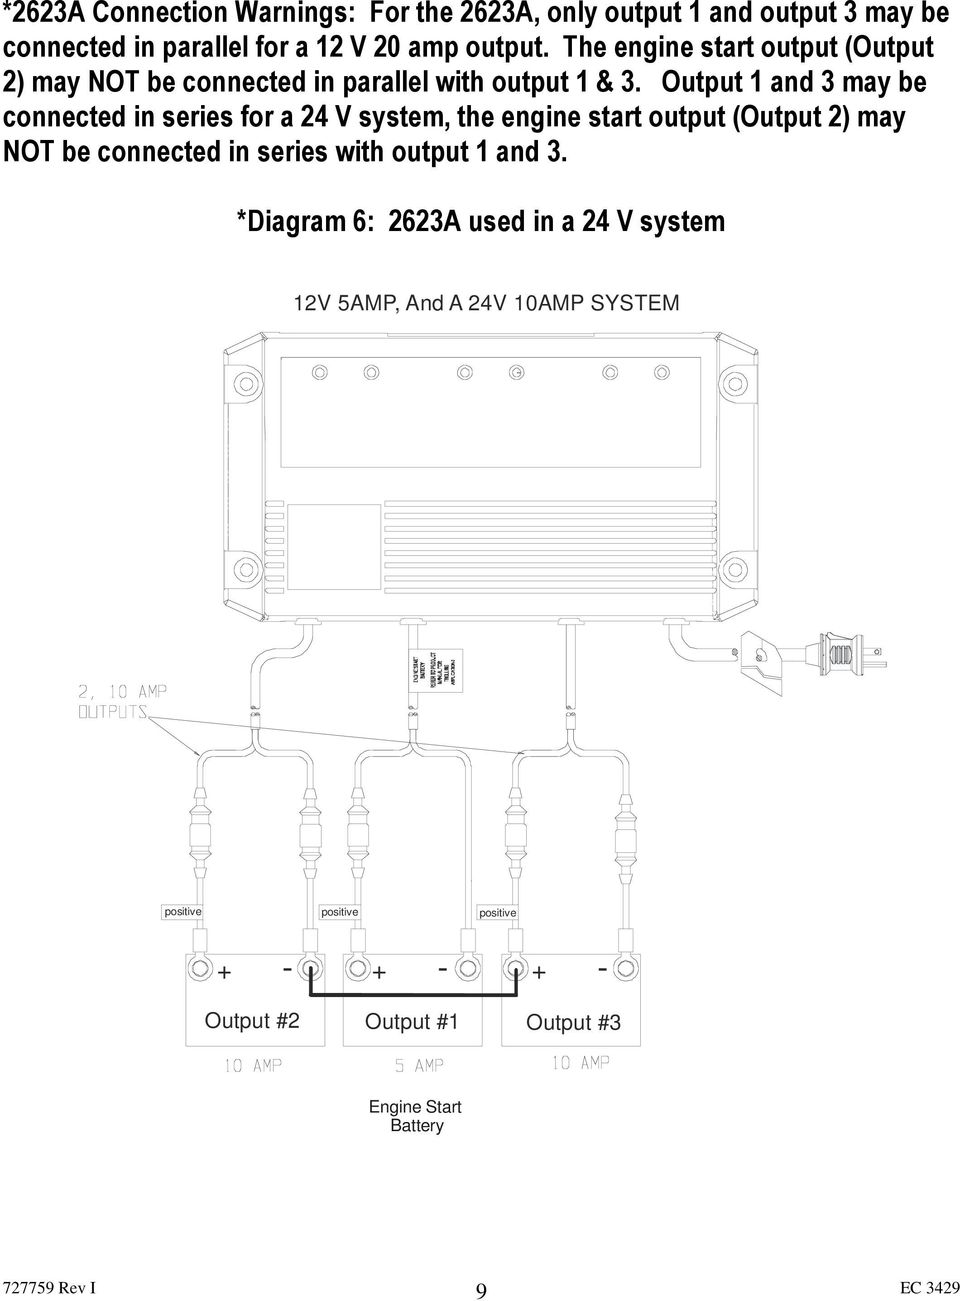 Trolling Charger Series Owner S Manual Pdf Odyssey Ups Circuit Diagram Output 1 And 3 May Be Connected In For A 24 V System The